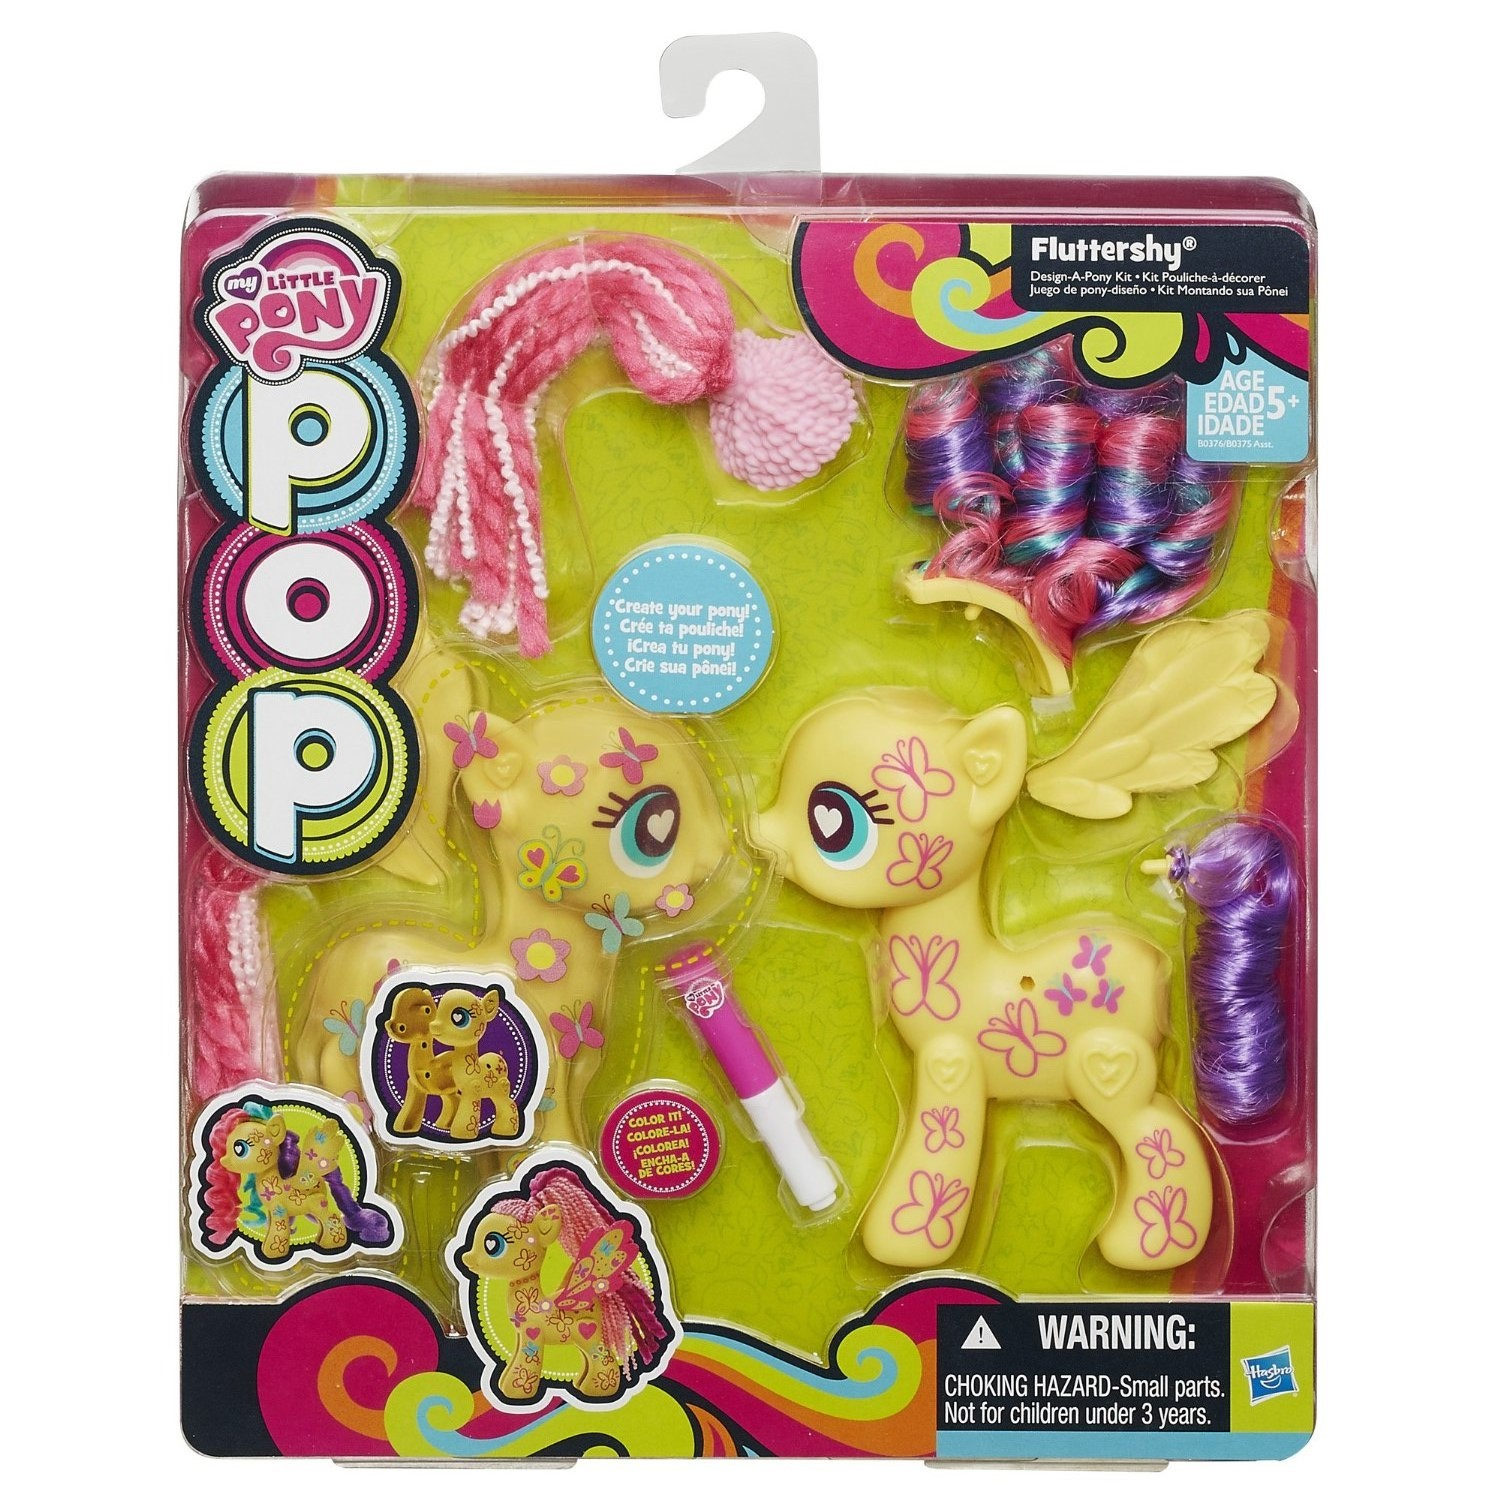 MLP POP Fluttershy Design-A-Pony Kit